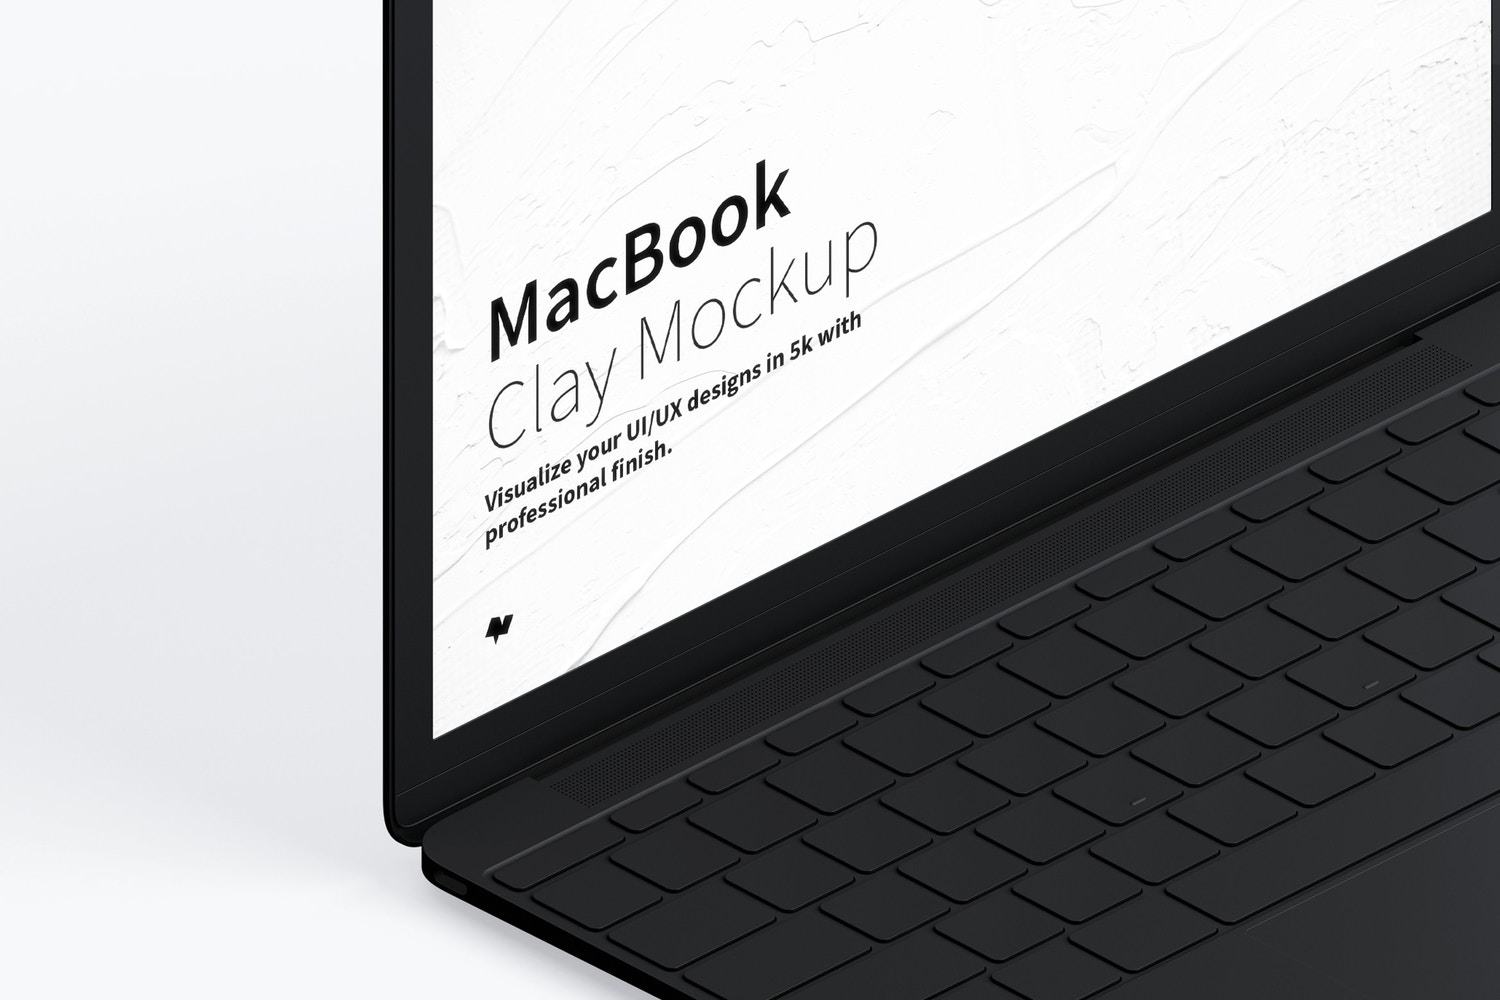 Clay MacBook Mockup, Isometric Left View (3) by Original Mockups on Original Mockups